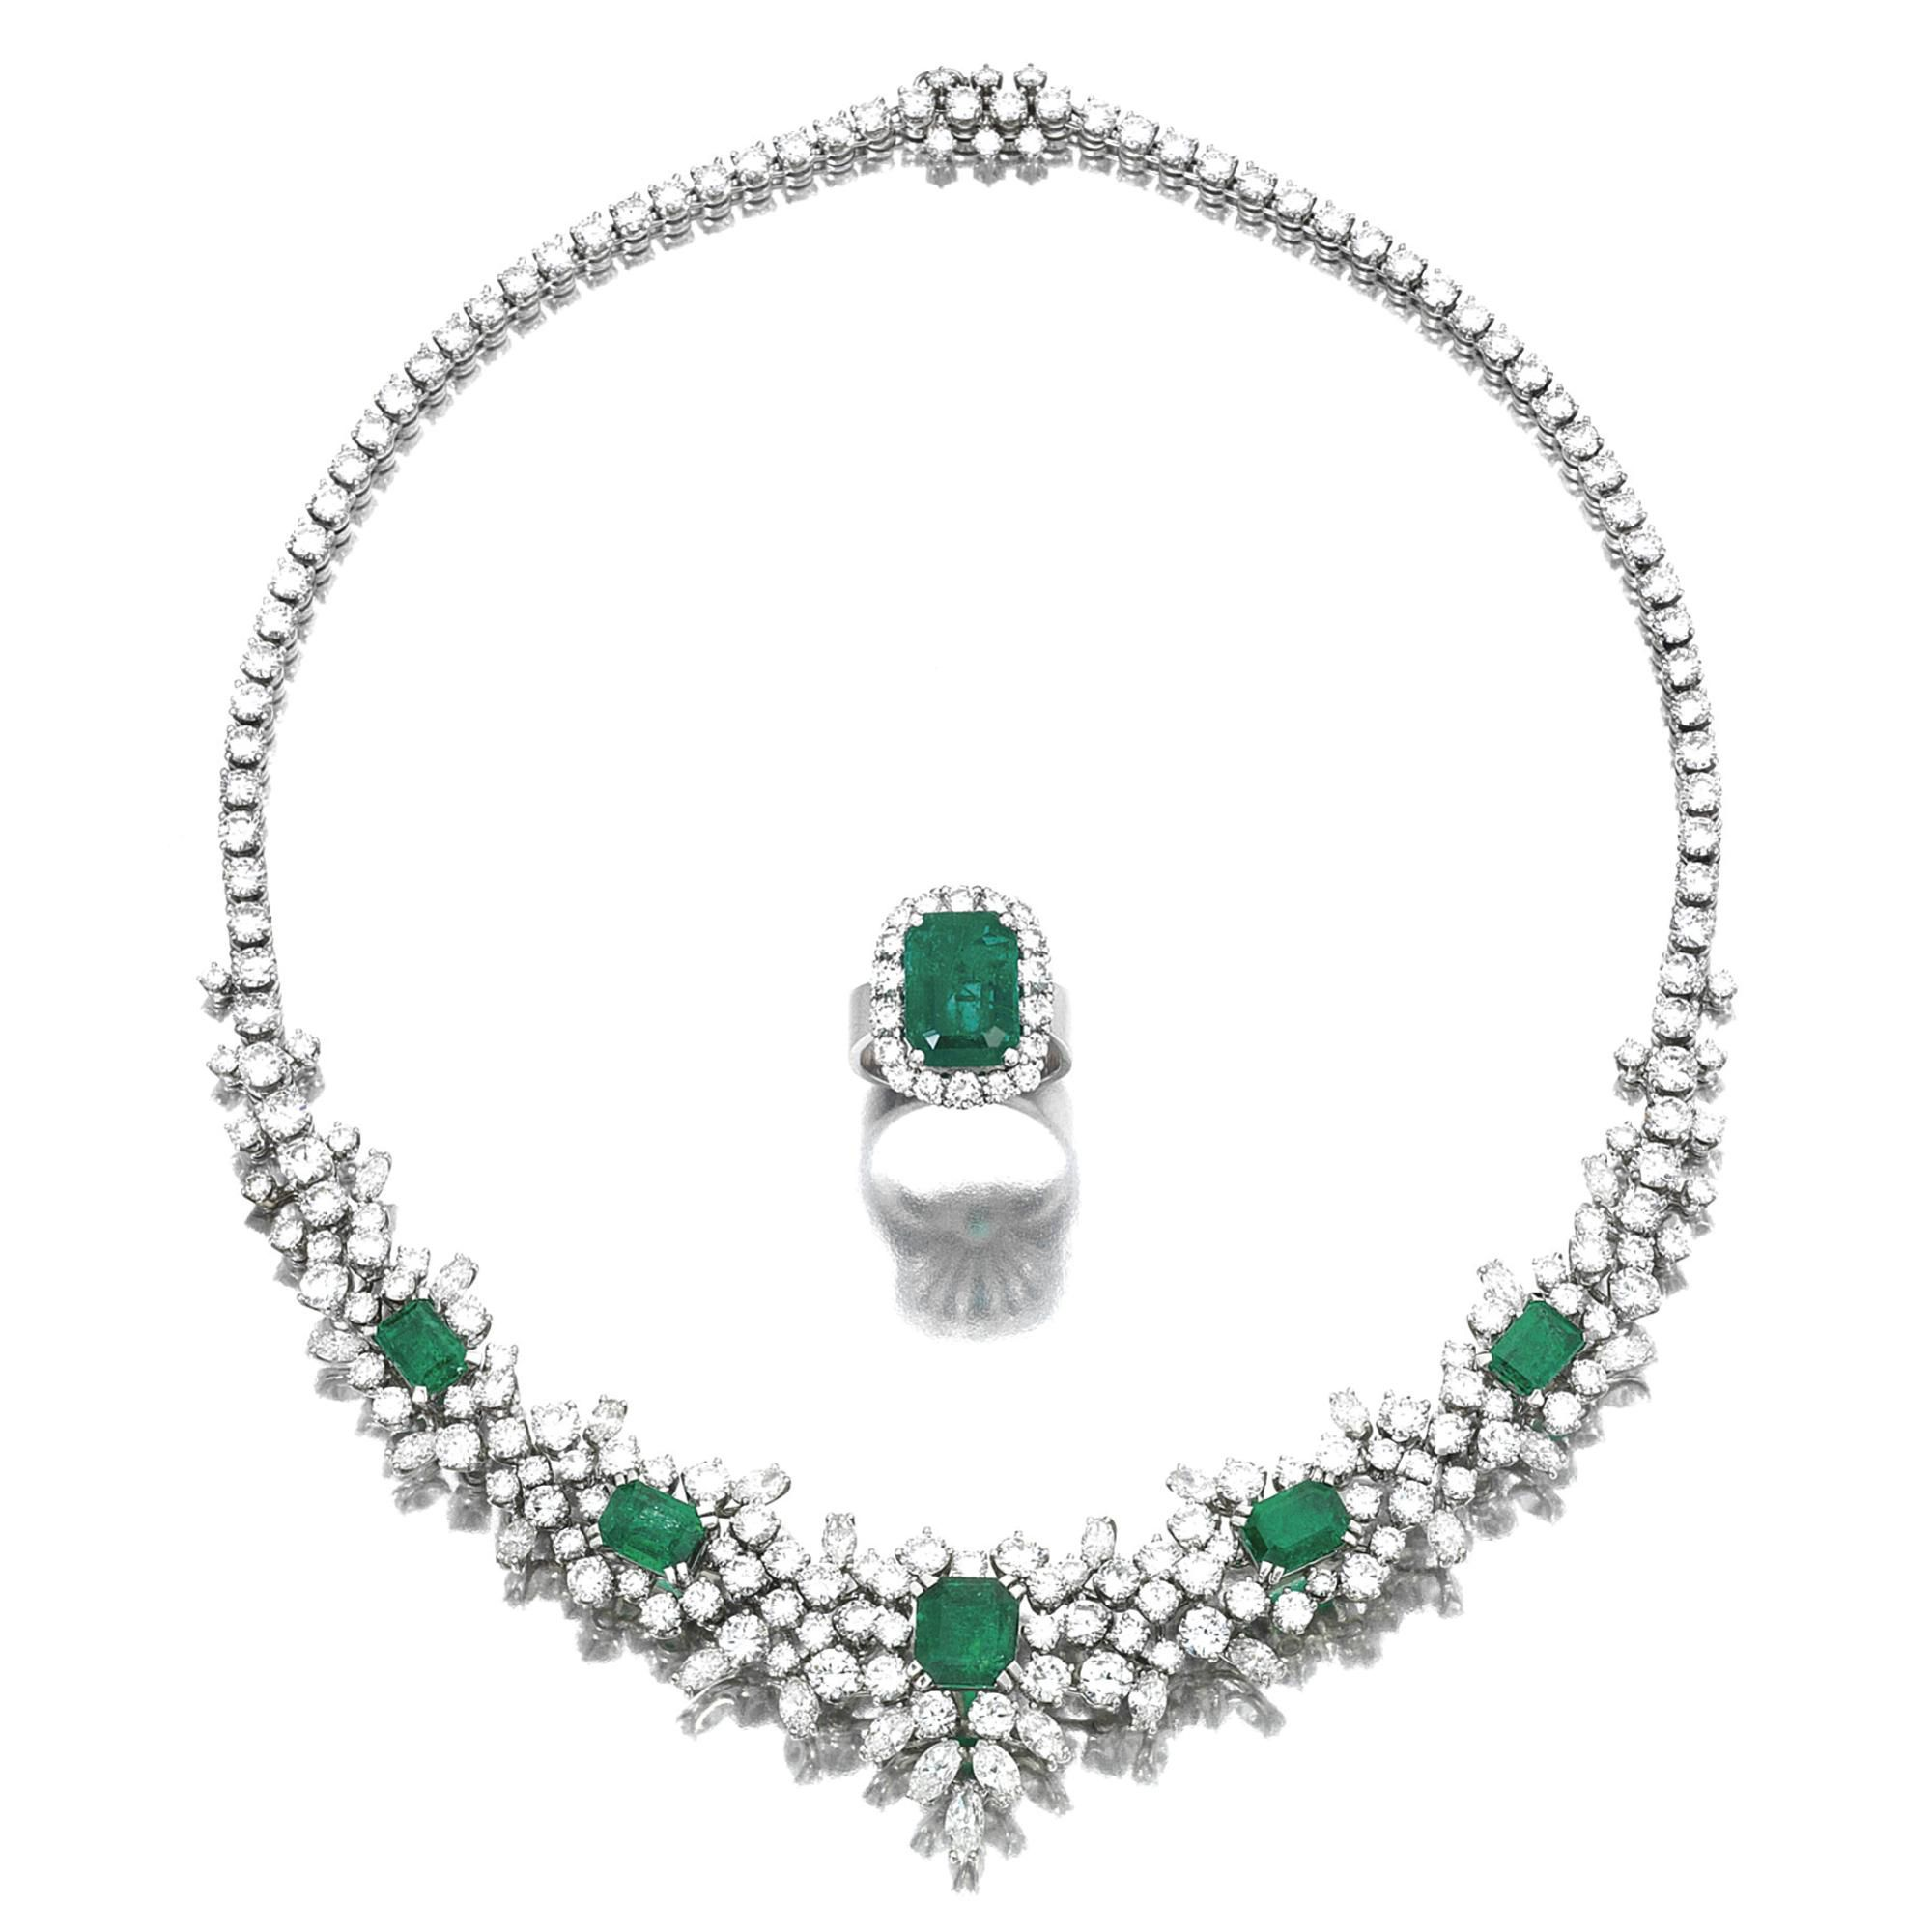 http://rubies.work/0257-ruby-rings/ Emerald and diamond necklace and a ring   lot   Sotheby's